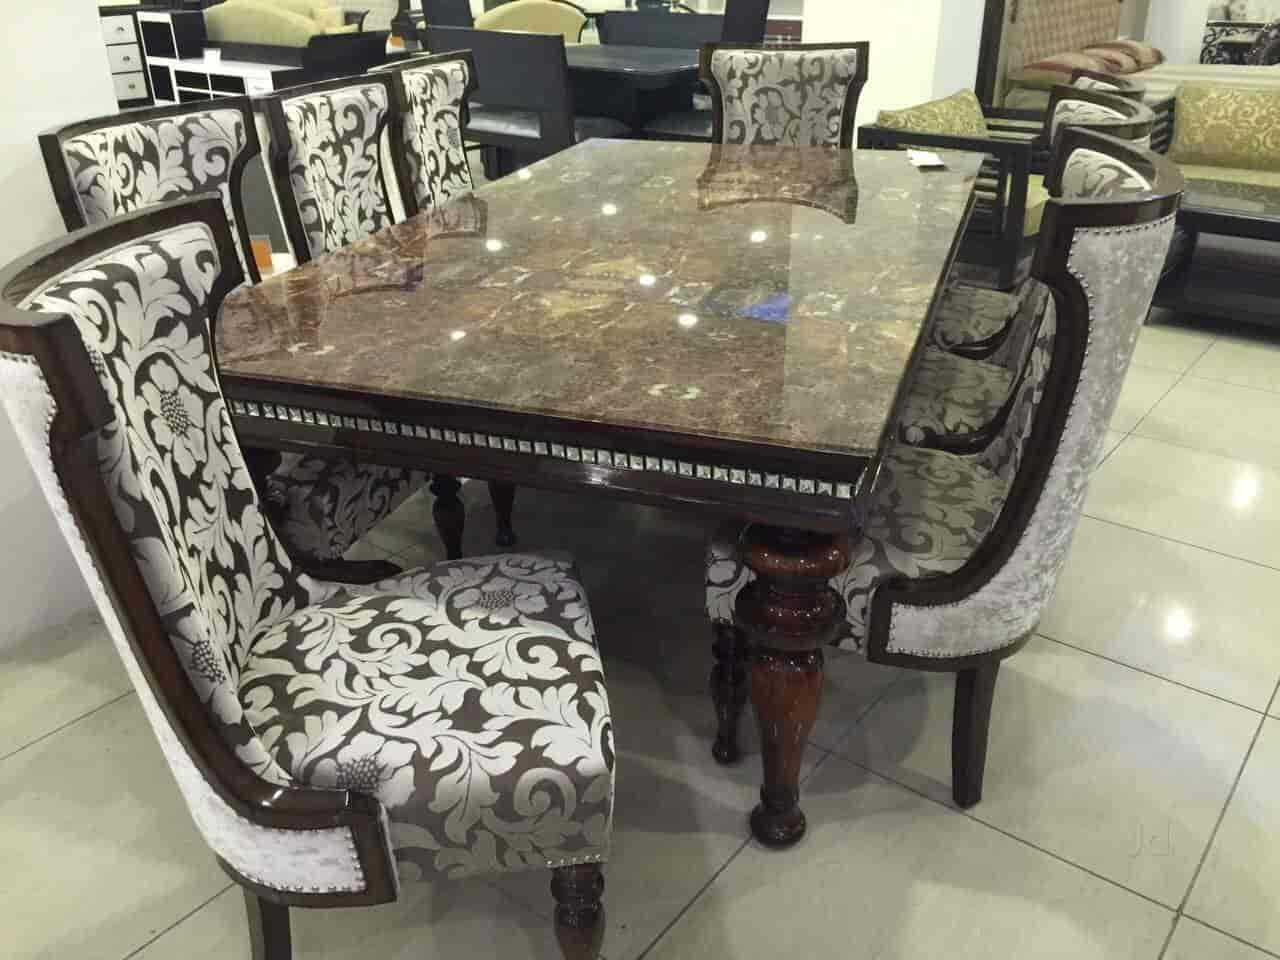 24x7 carpenters furniture services kirti nagar furniture manufacturers in delhi justdial